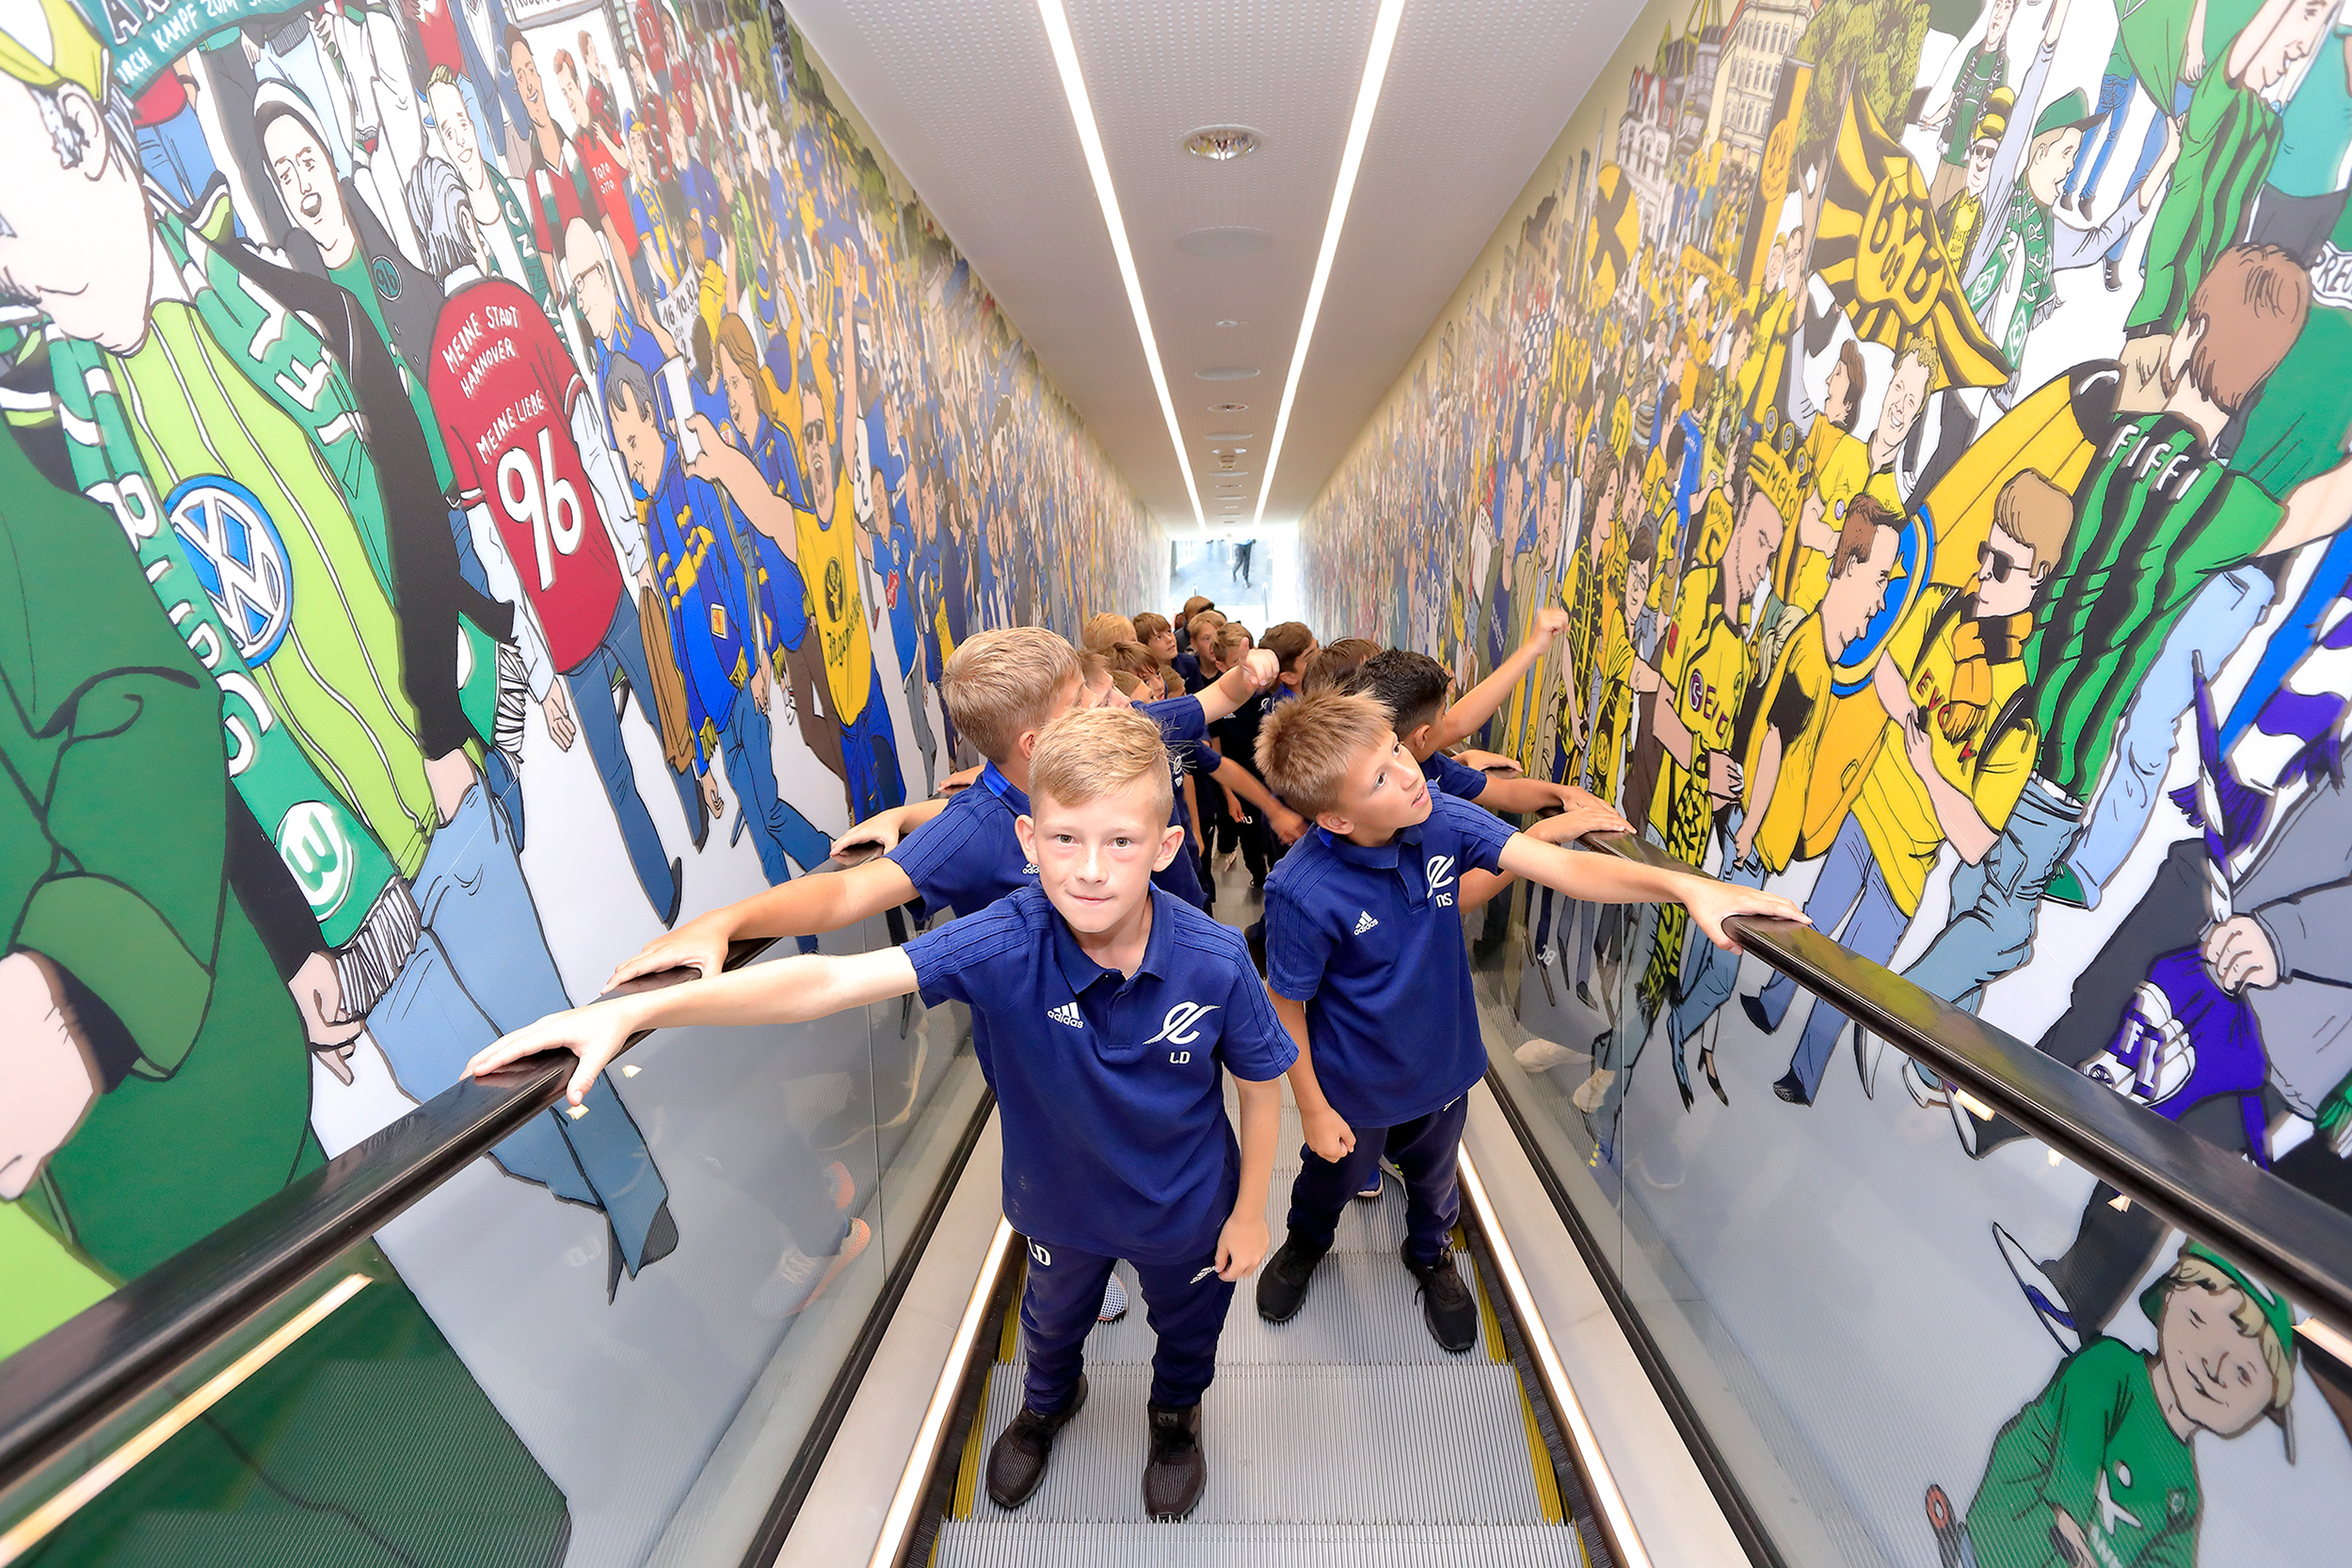 A youth team is taking the escalator in the German Football Museum.